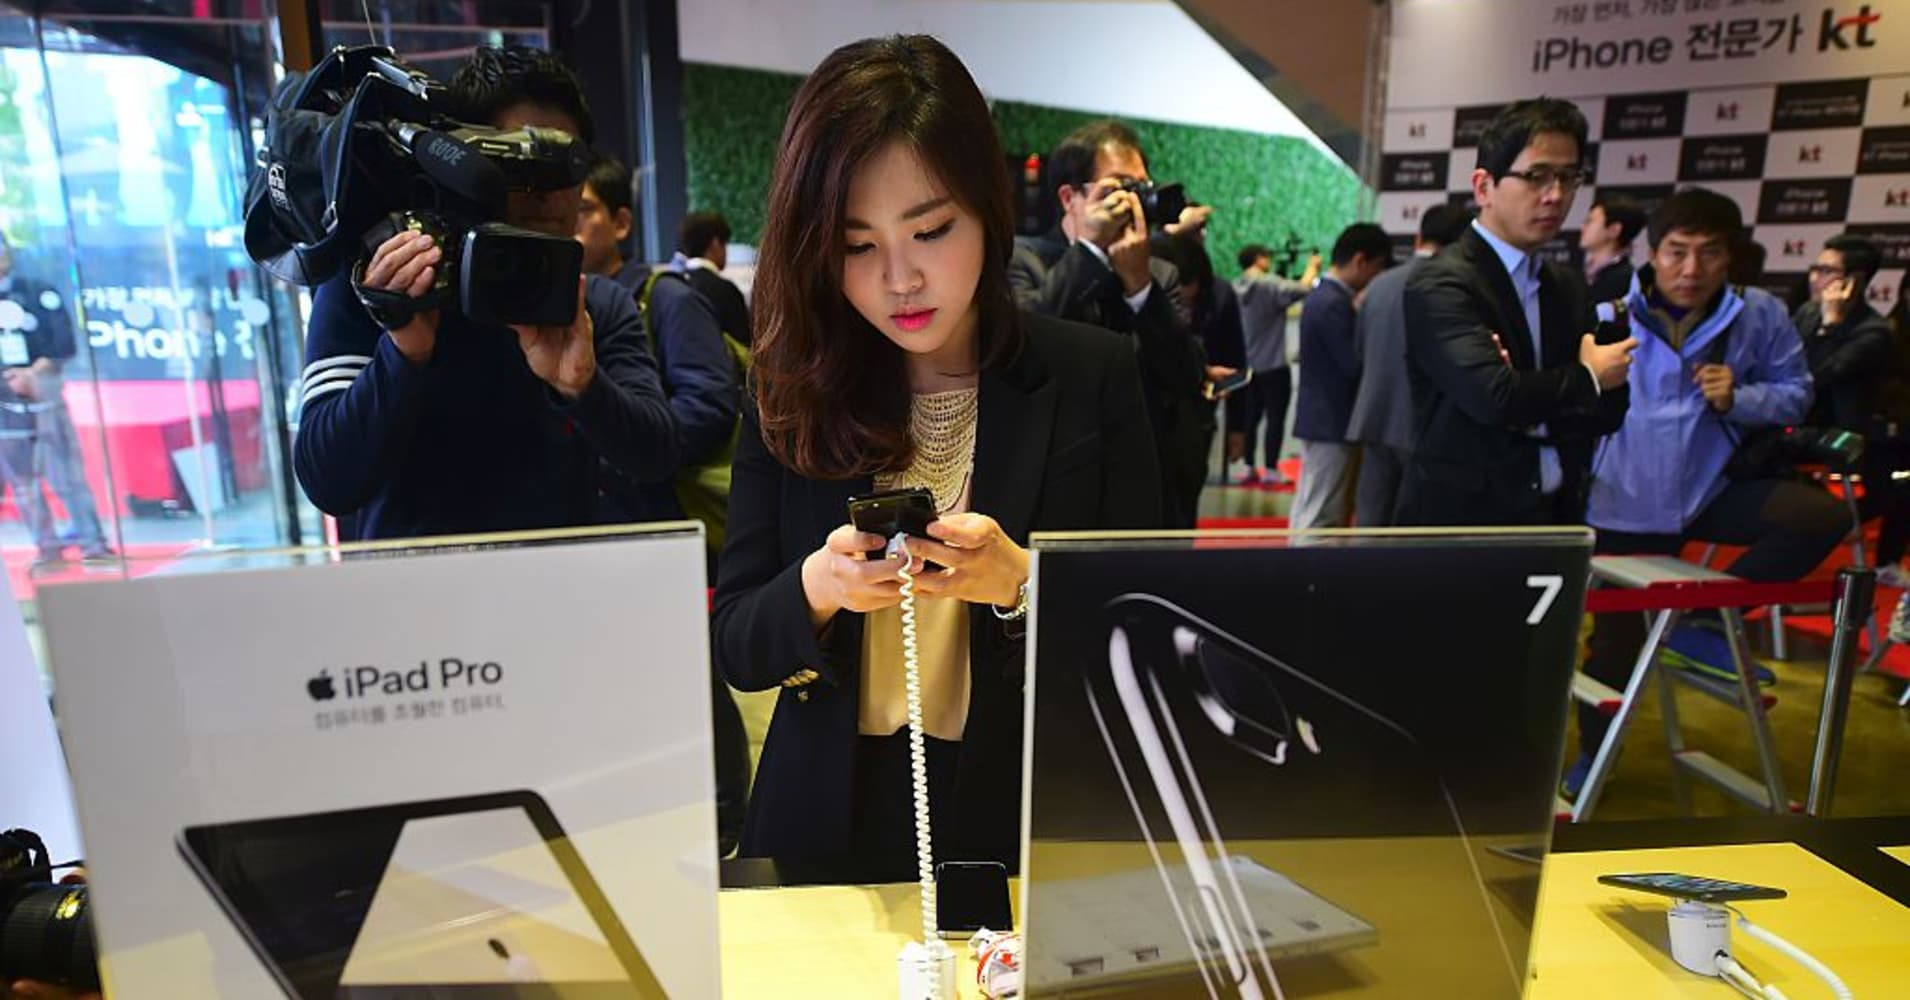 Beyond China, Apple's Asian business leans heavily on wealthier countries